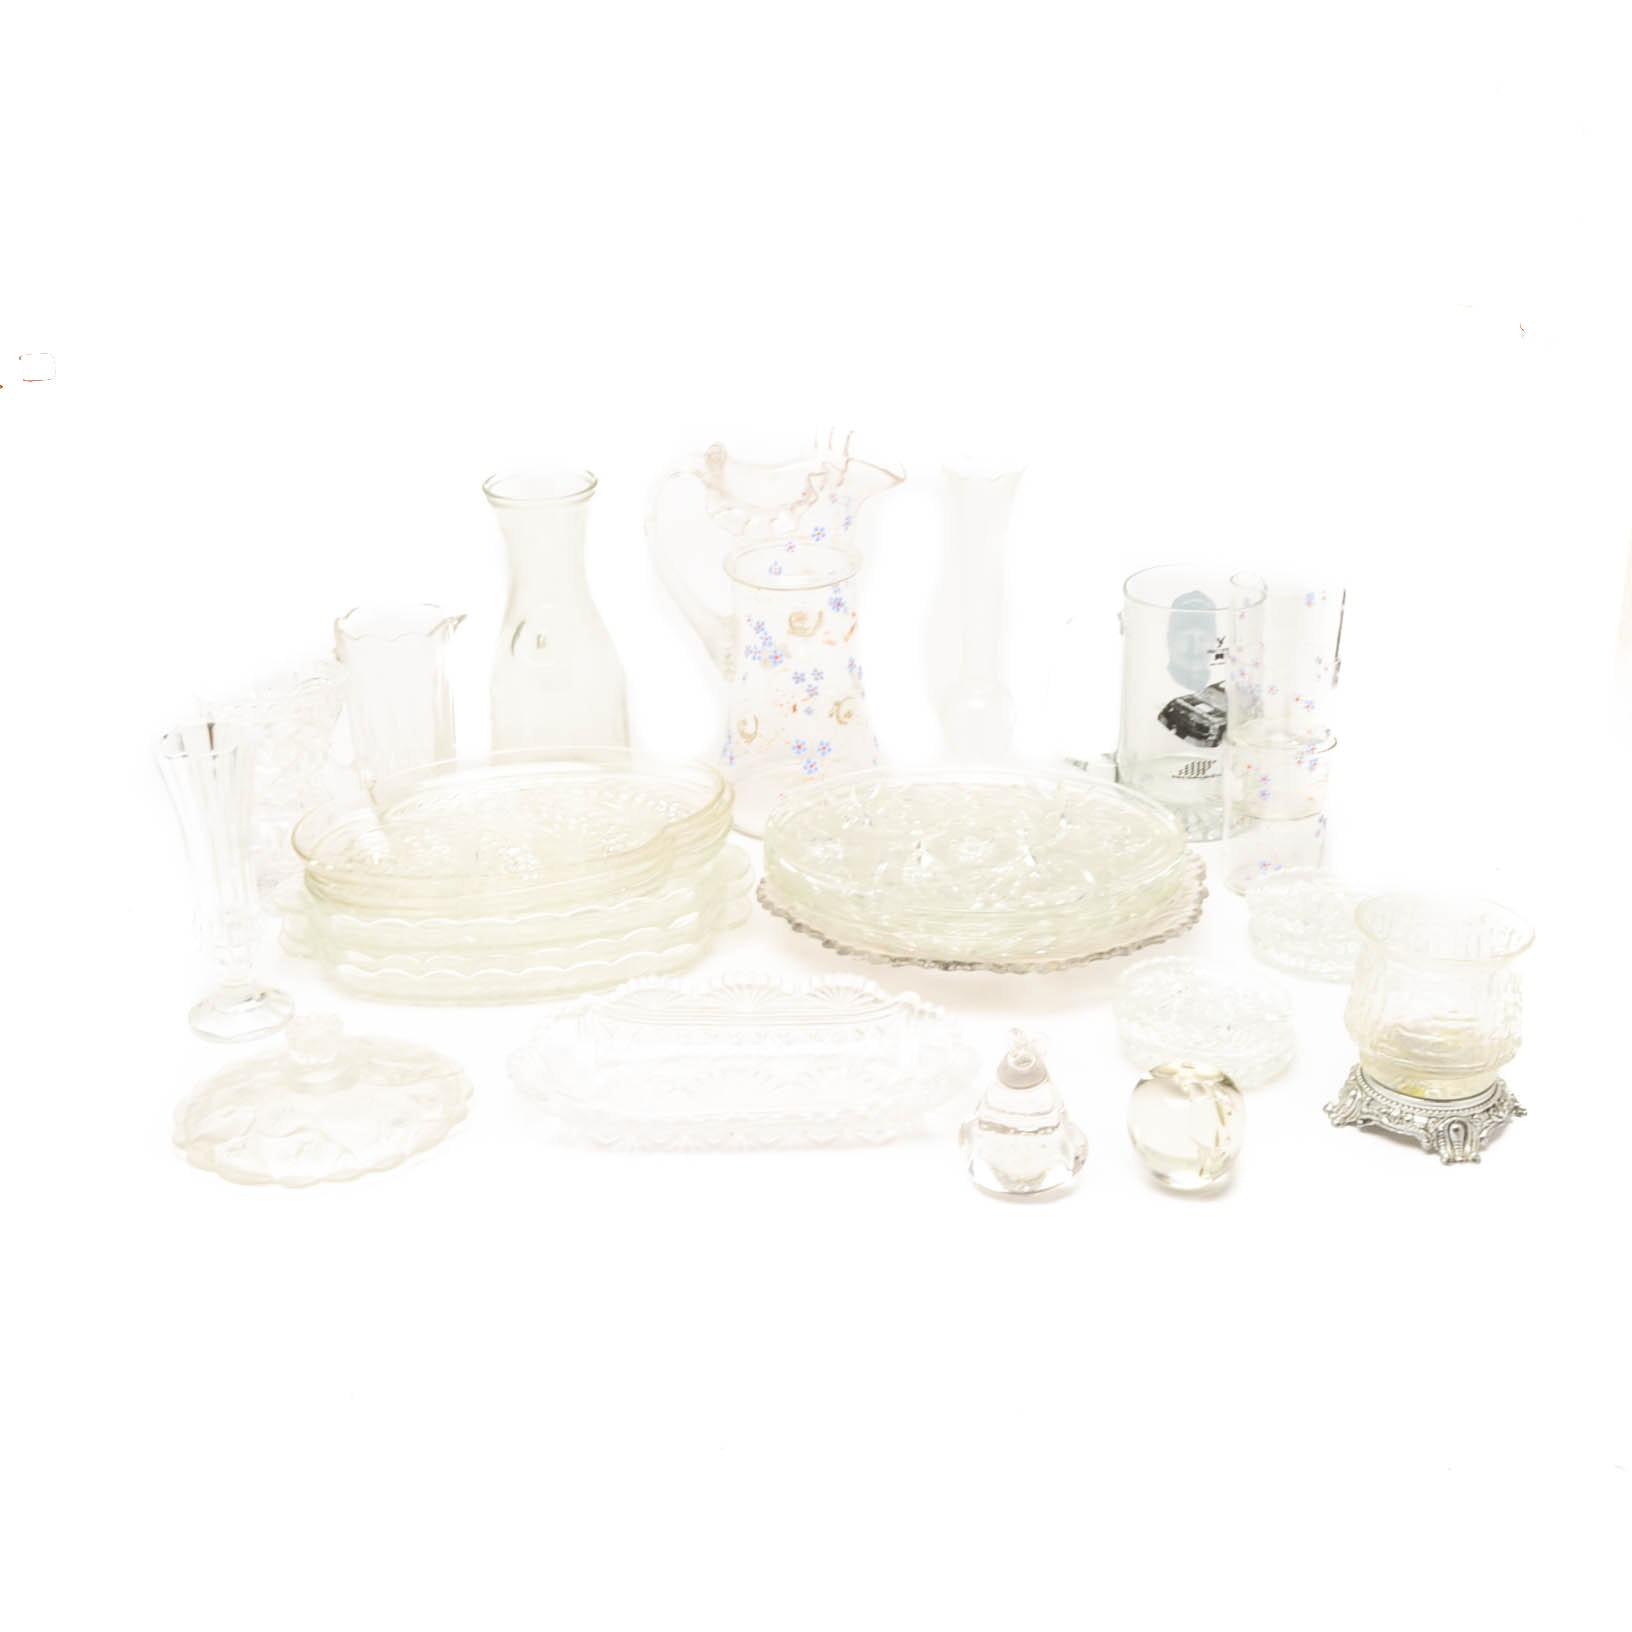 Assorted Glassware and Serveware Featuring Mikasa